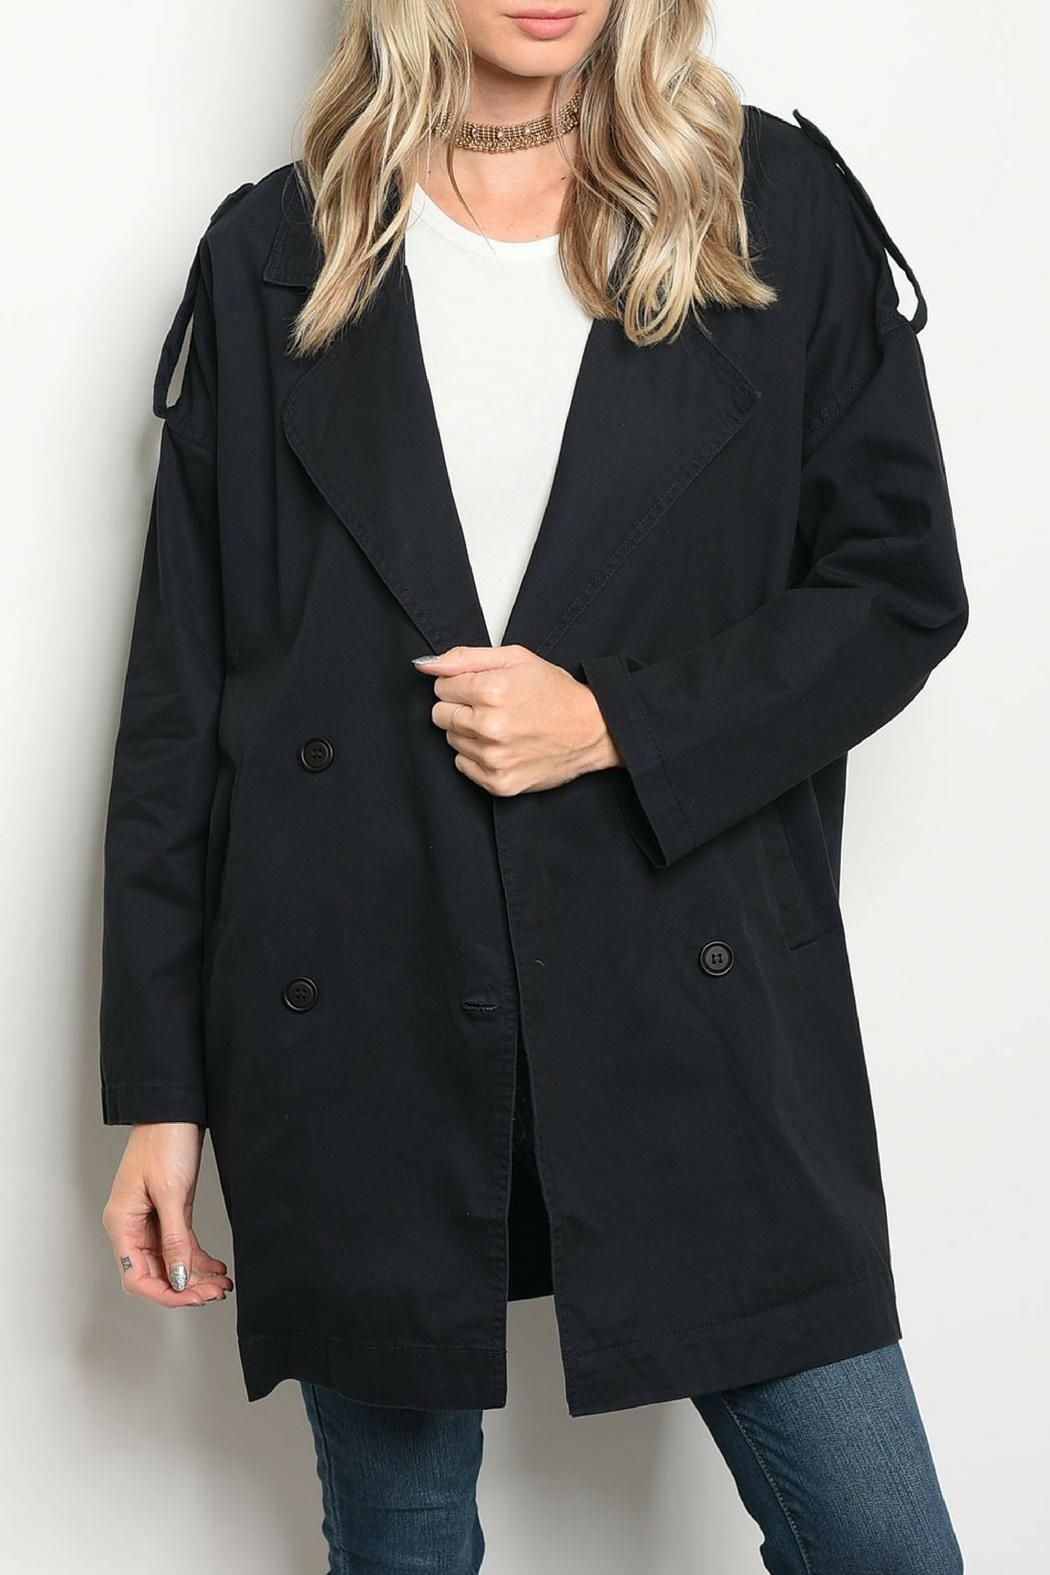 CALS Navy Button Jacket - Main Image